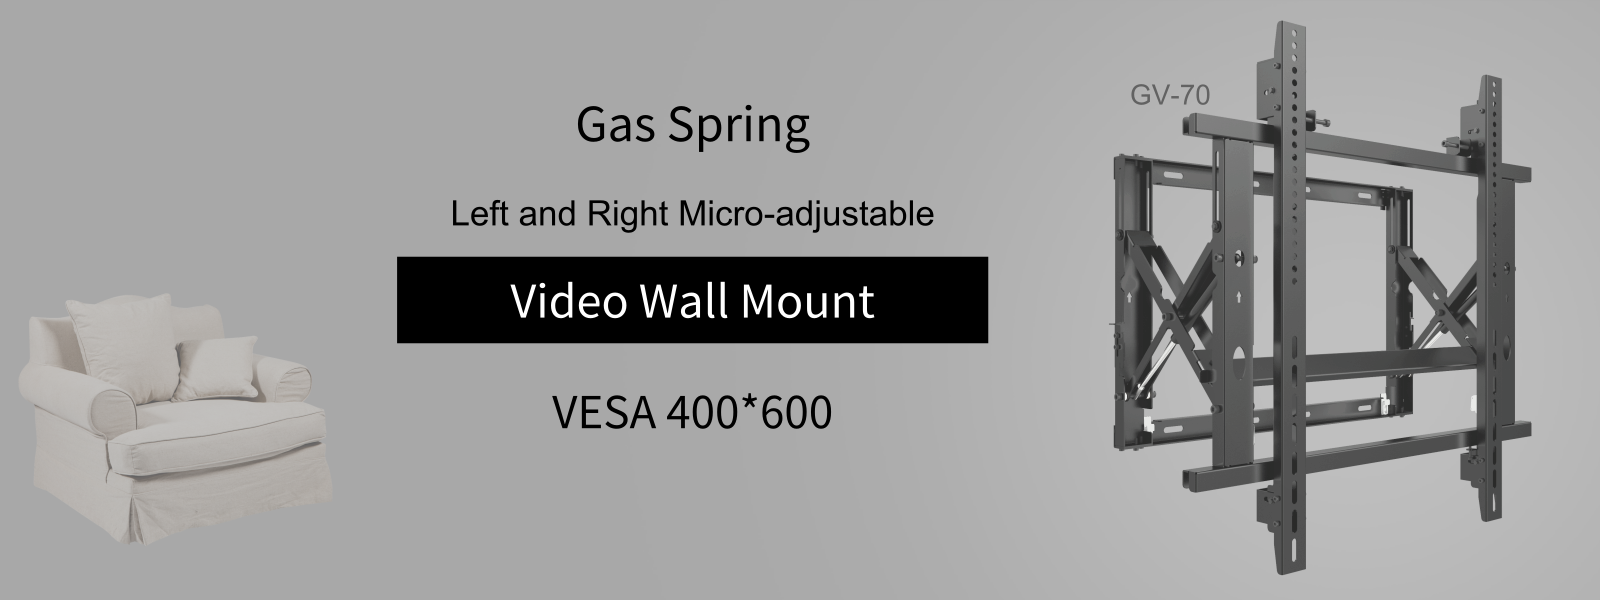 最新GV-70-2019.01.23GAS SPRING VIDEO WALL MOUNT